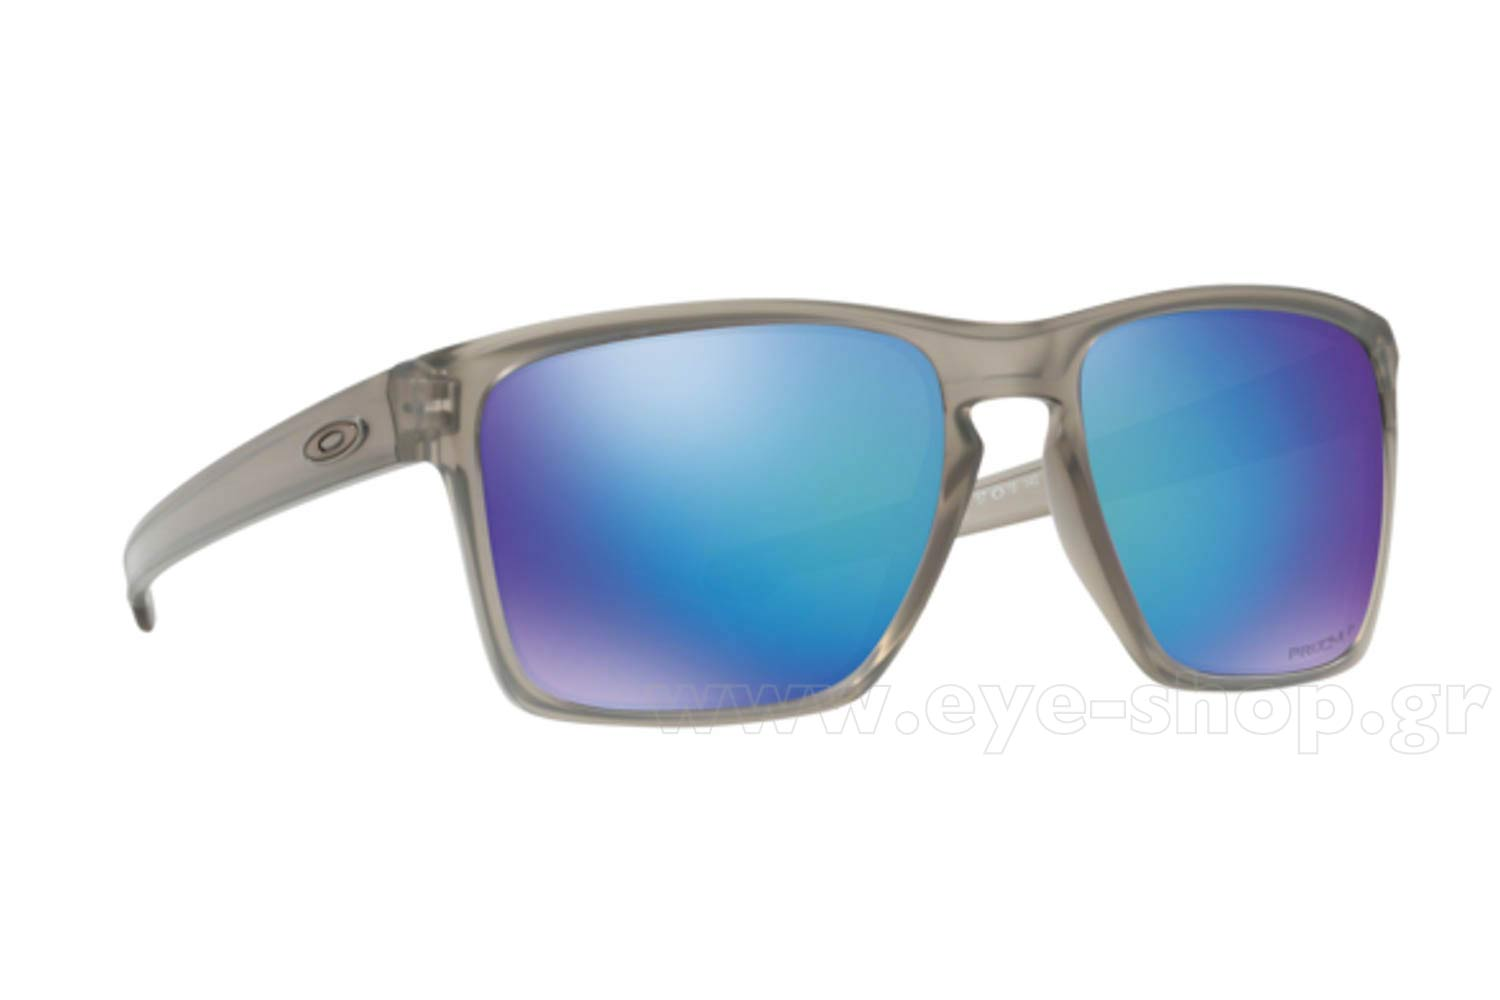 Γυαλιά Oakley SLIVER-XL-9341 18 polarized